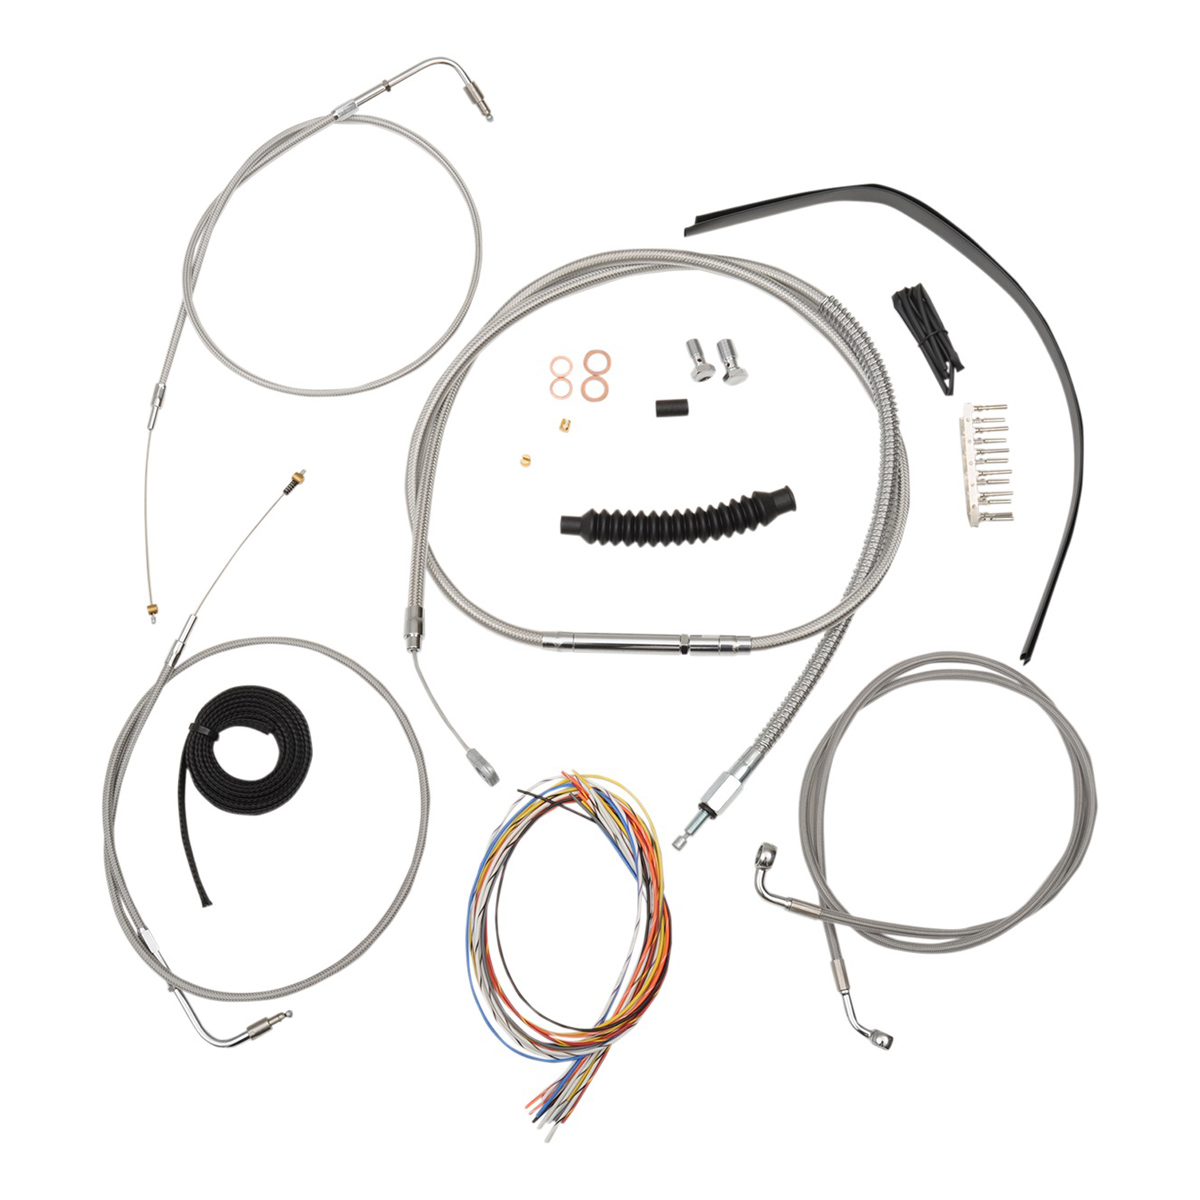 La Choppers Stainless Complete Cable Line Wiring Handlebar Kit For 18 20 Bars On Models